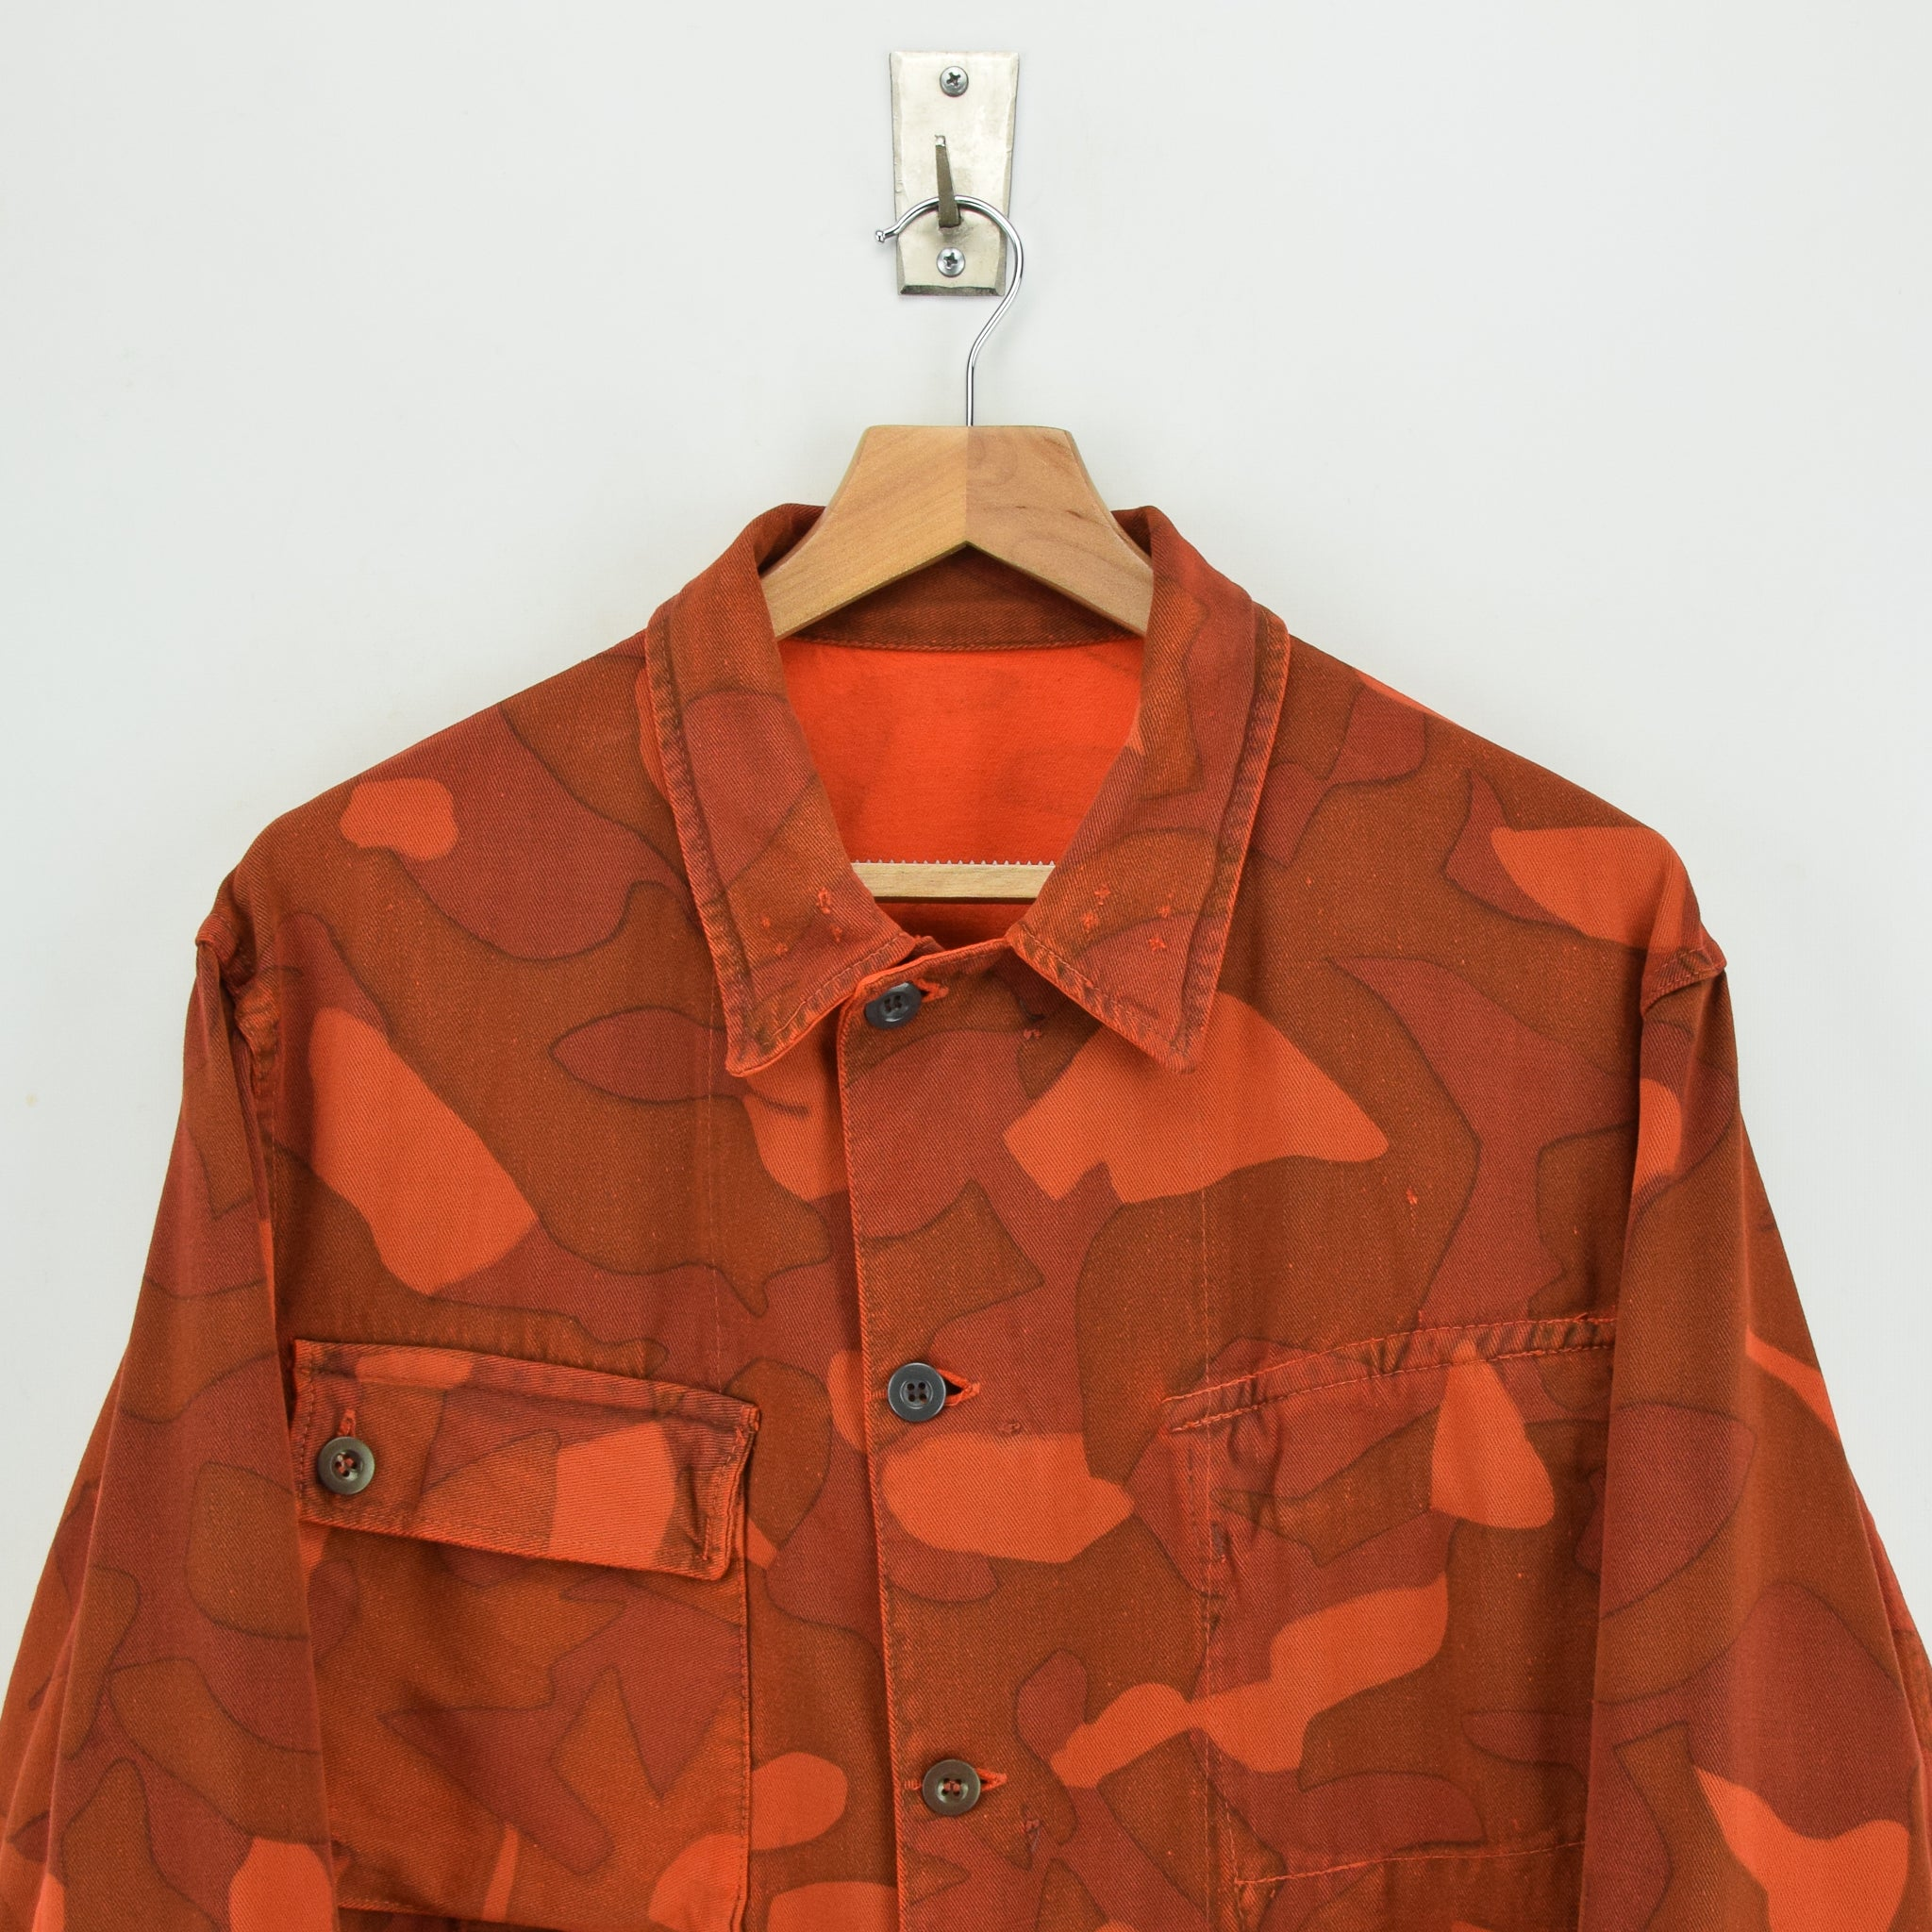 Vintage 60s Military Finnish Army Orange Overdyed Camo Mountain Field Jacket L chest